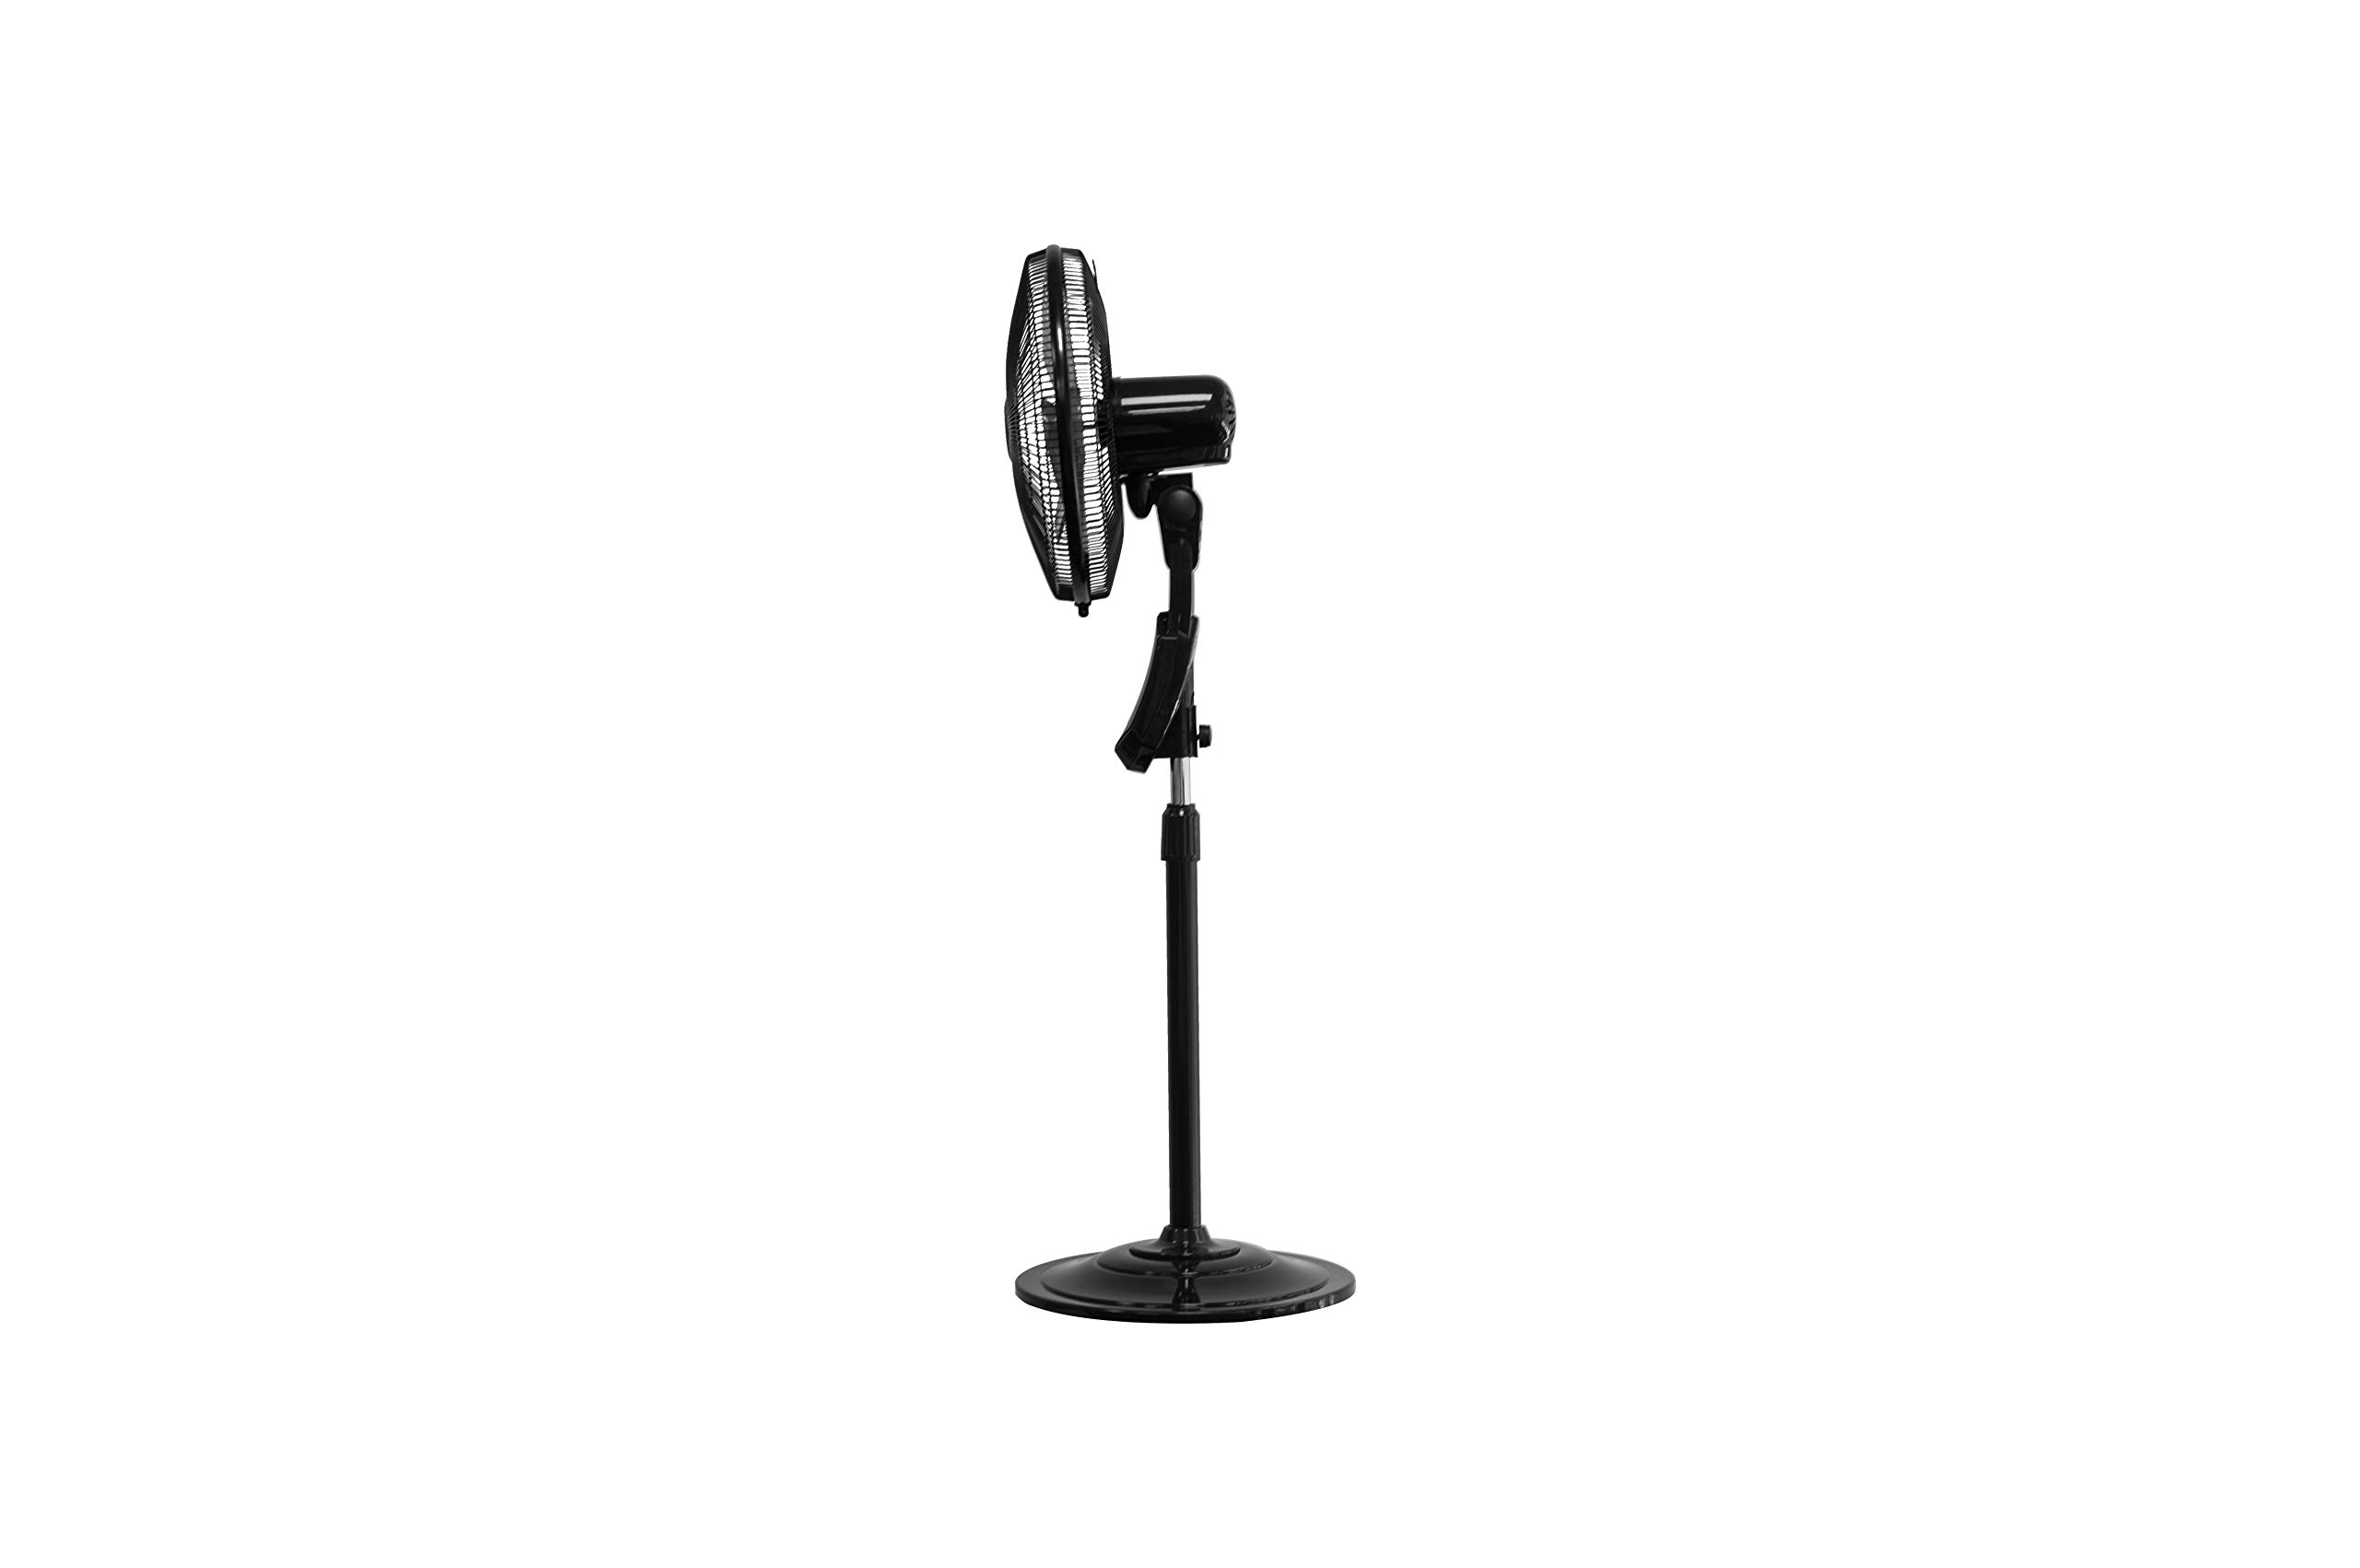 612Y%2BFlltGL - AirGo Smart Fan - Control via Voice Assistants and App (iOS & Android), Awarded as one of the quietest fans on the…